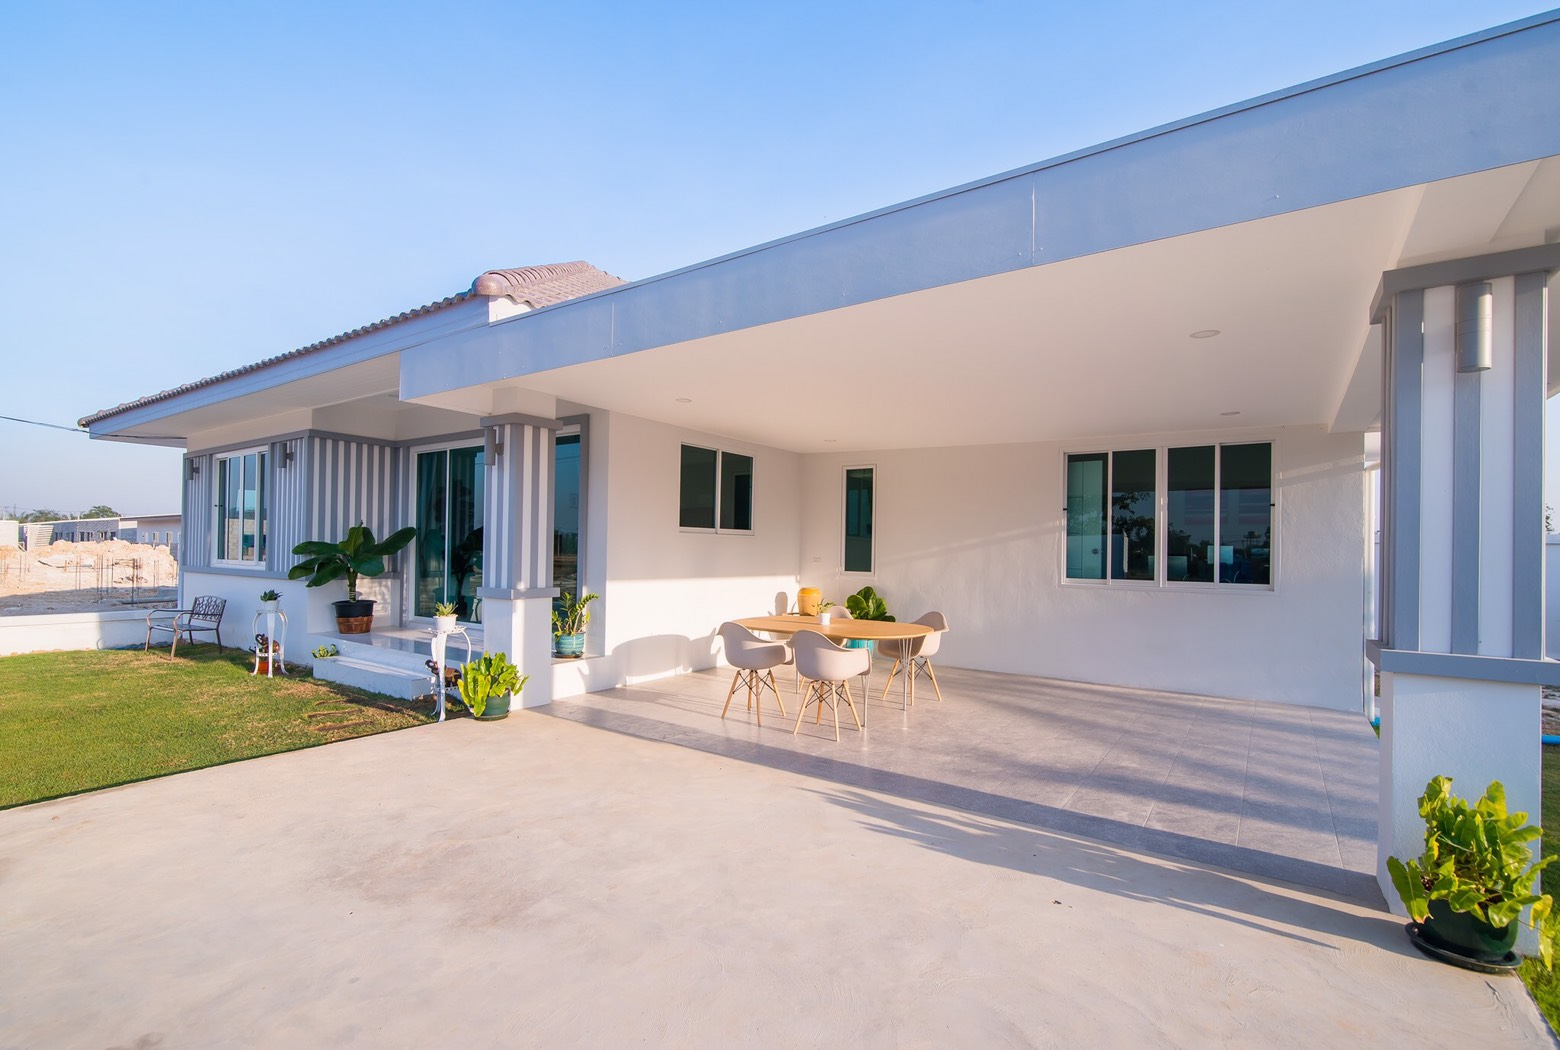 ฺBrand new bungalow for sale at The Village Hua Hin Soi 88